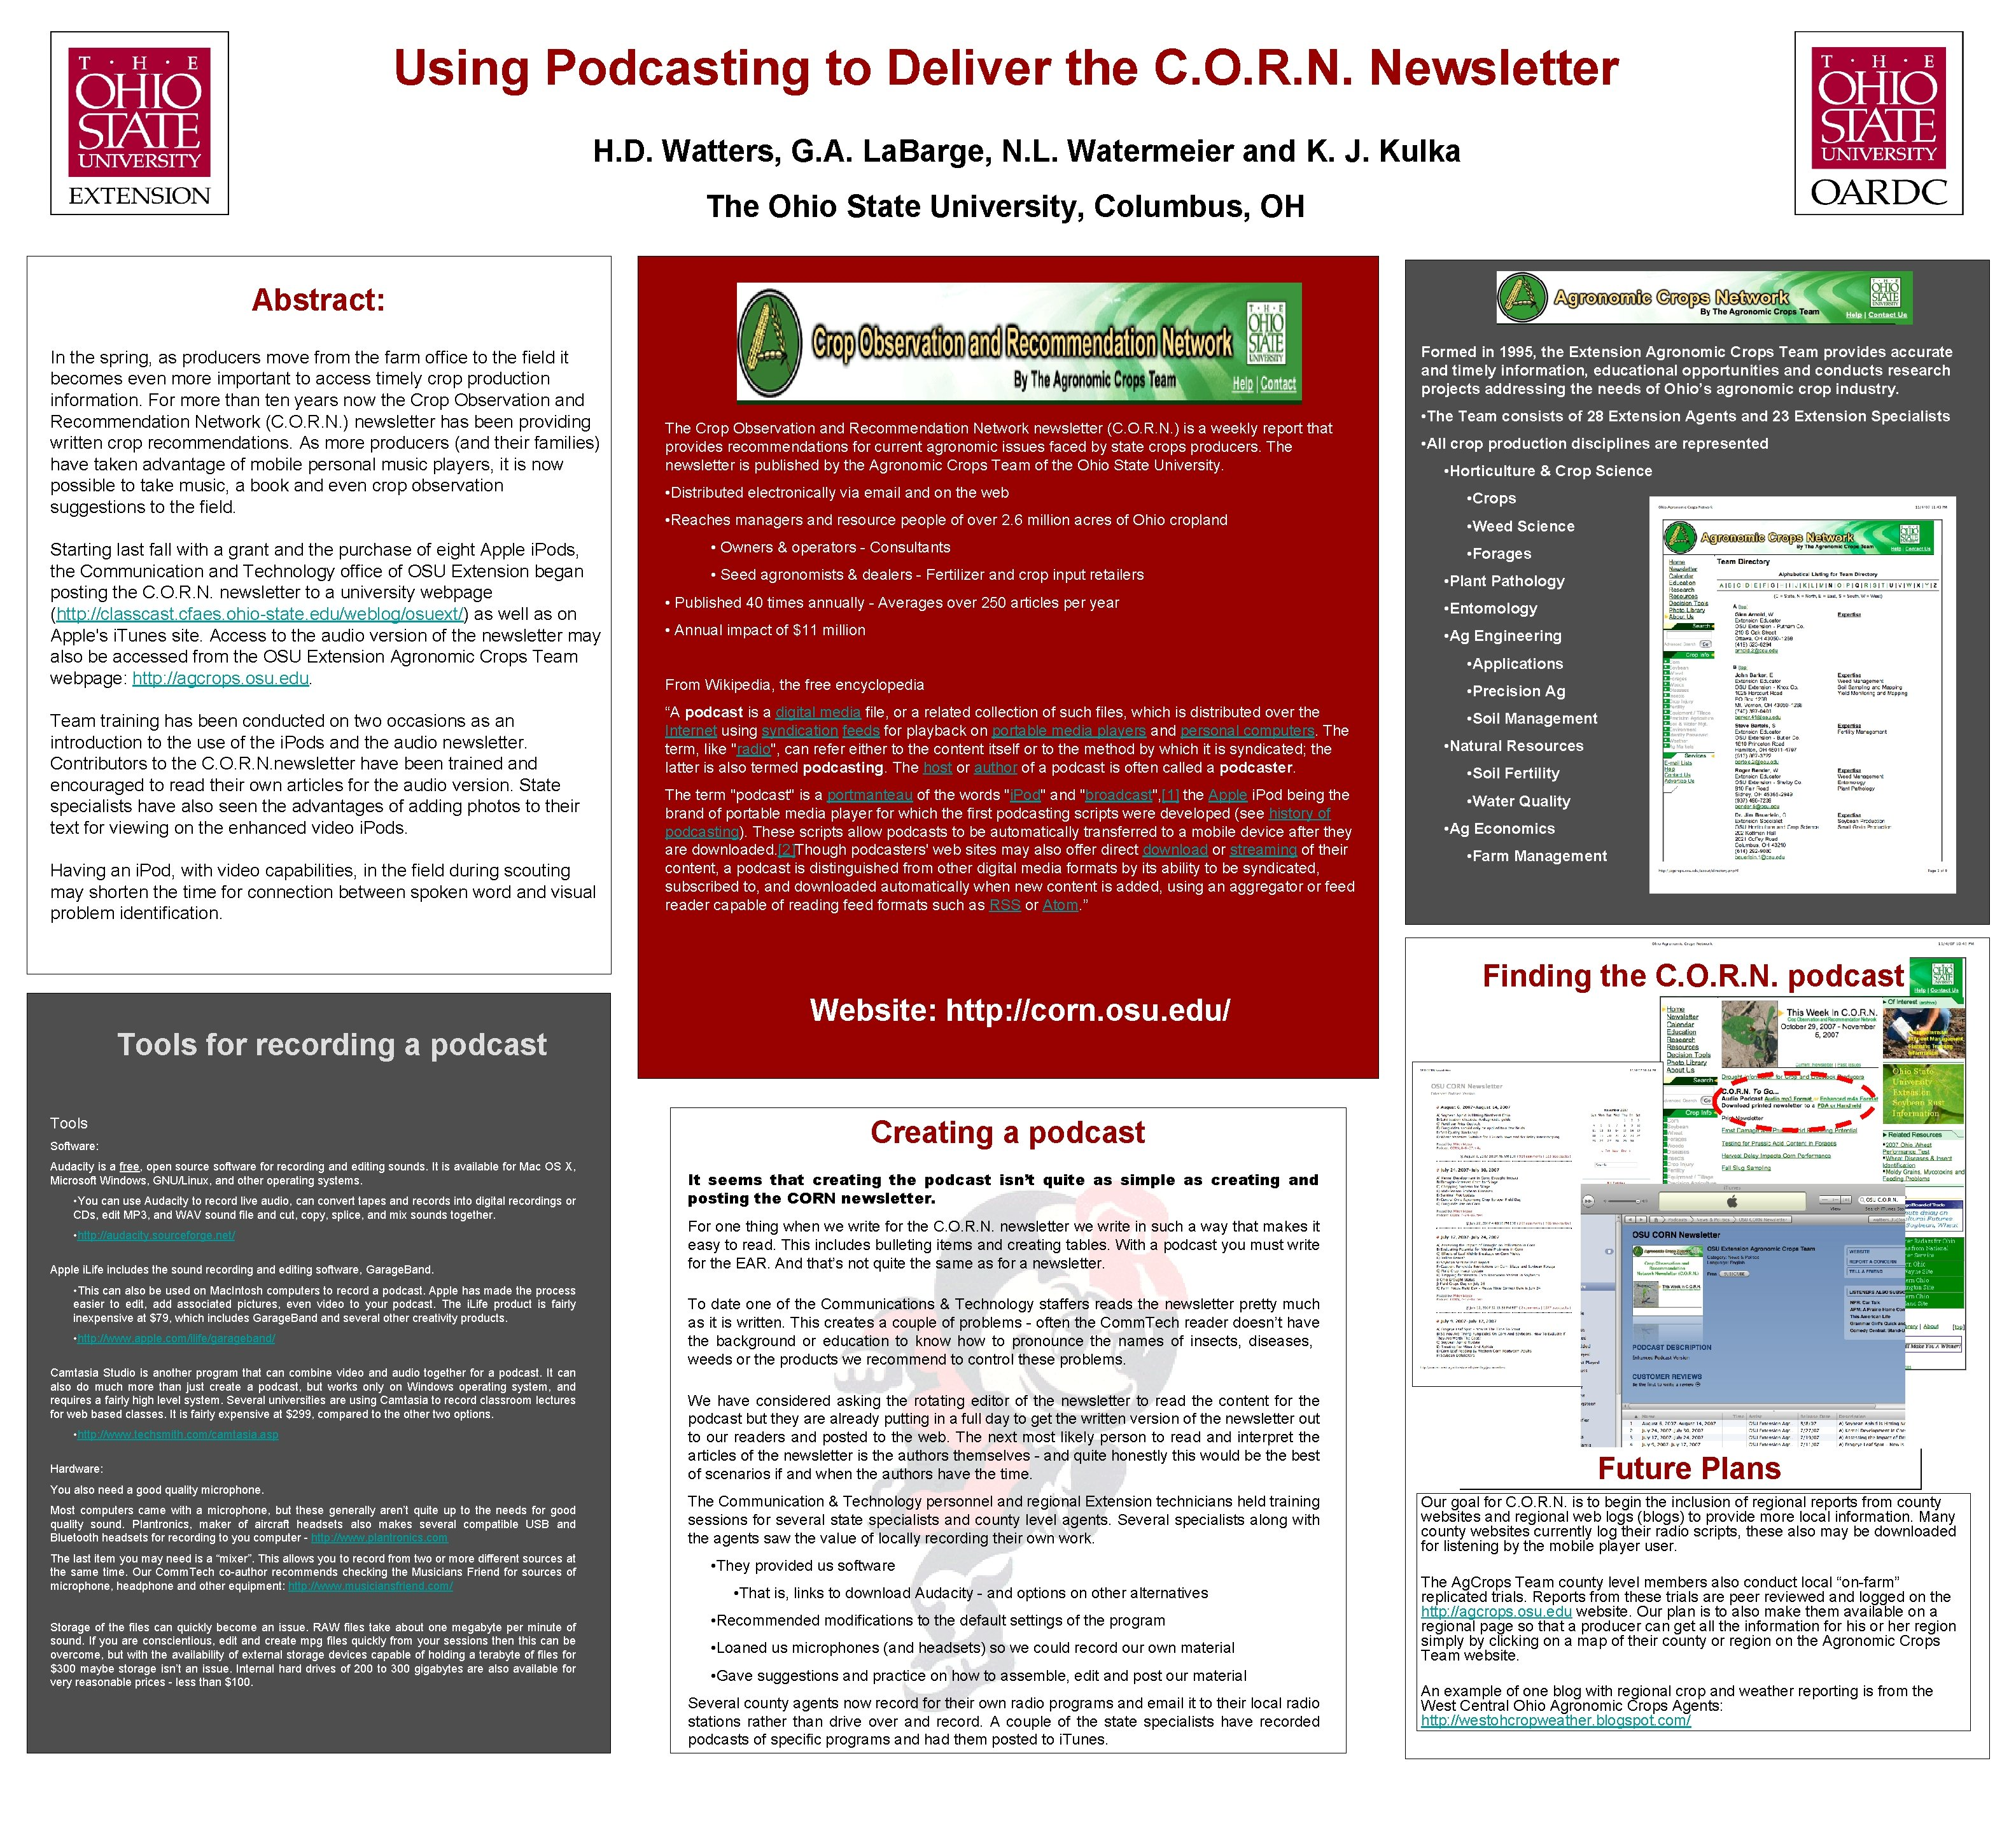 Using Podcasting to Deliver the C. O. R. N. Newsletter H. D. Watters, G.